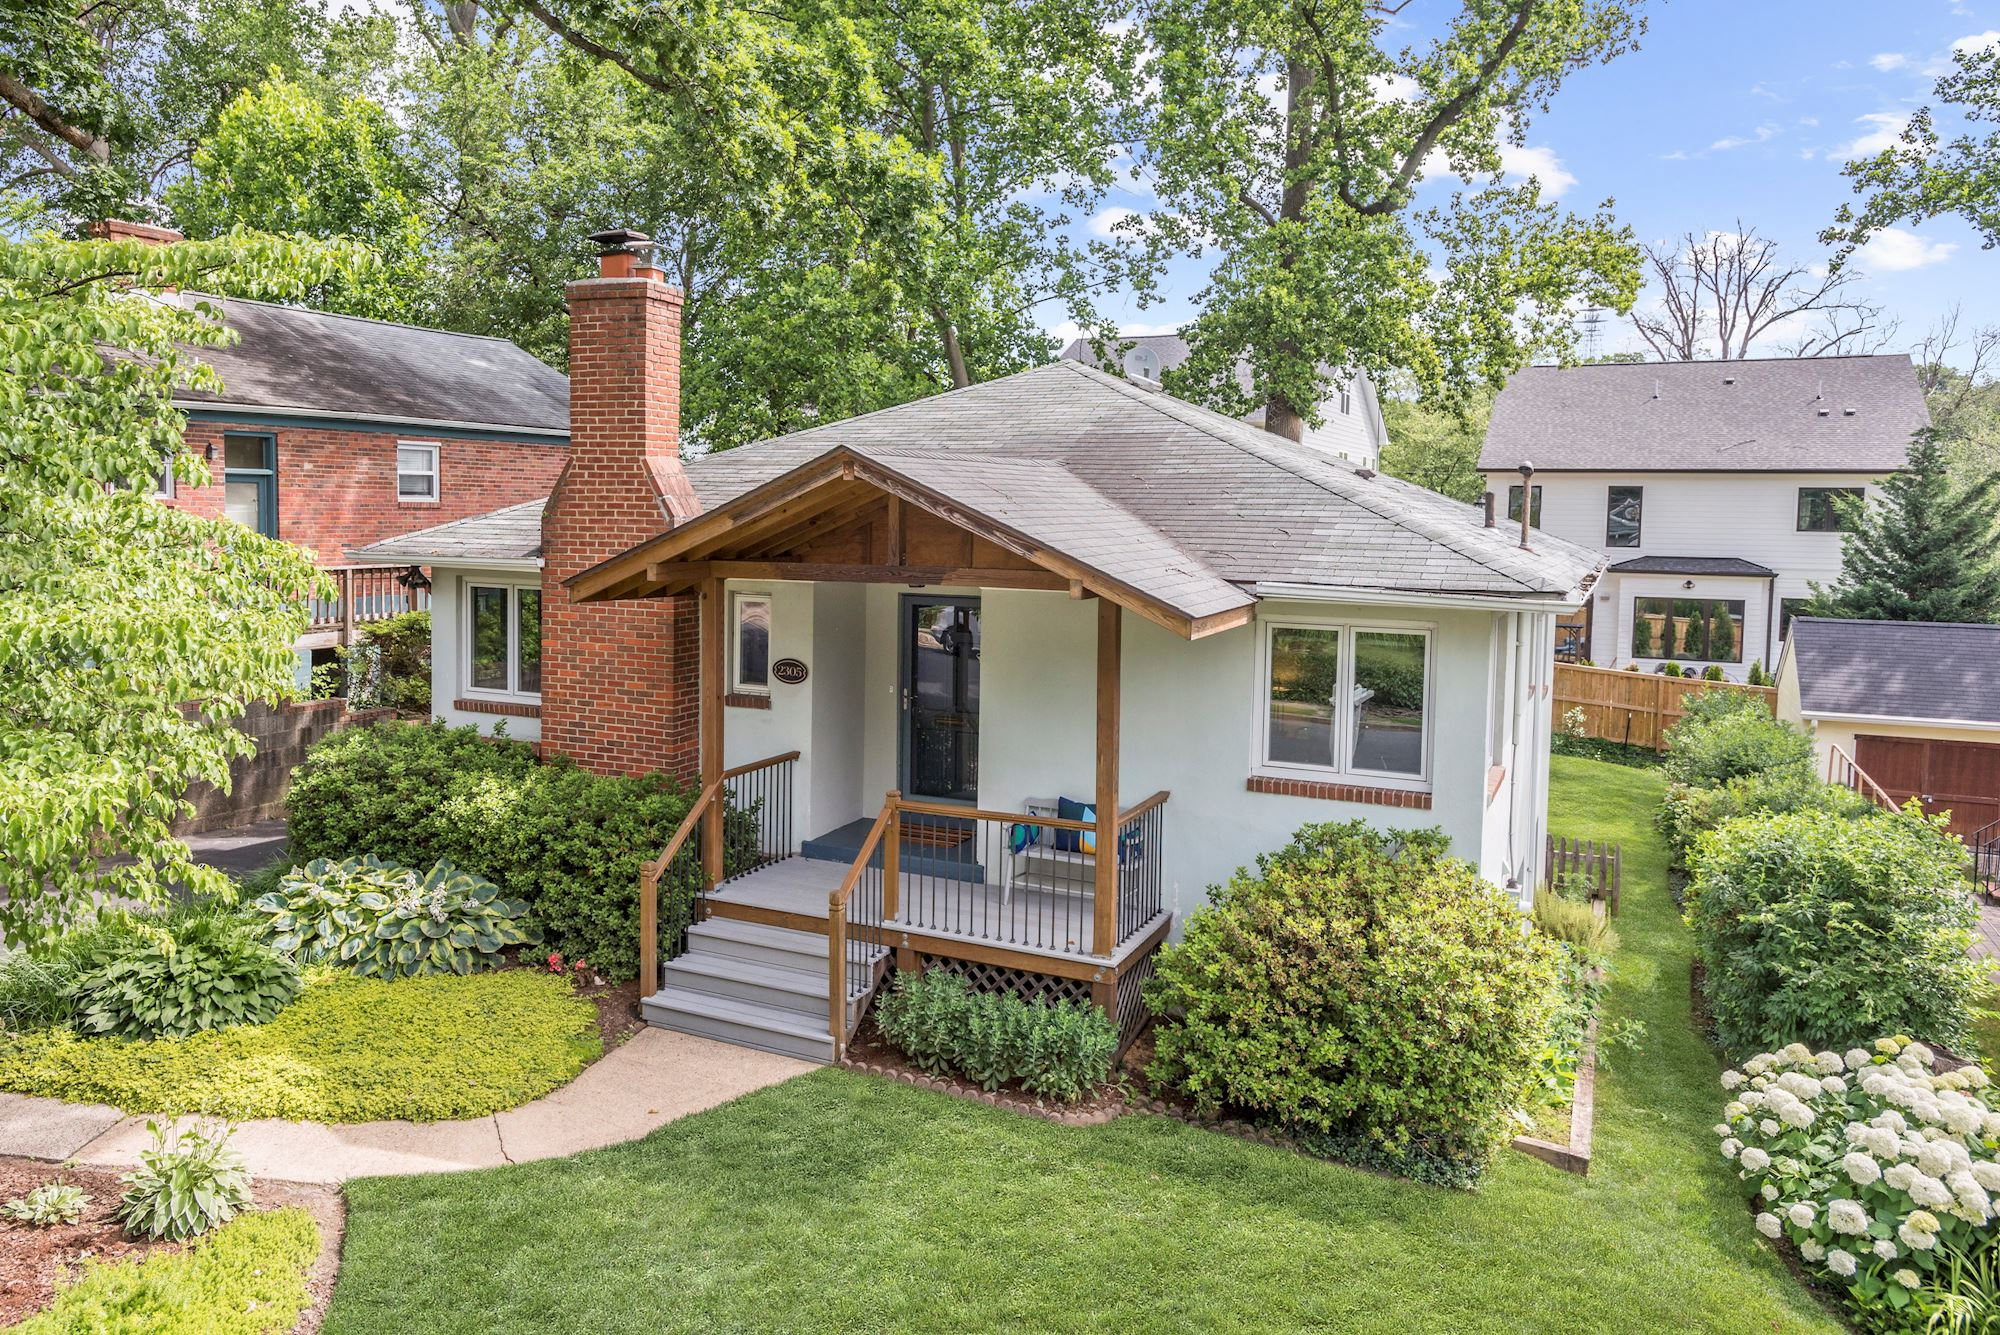 North Arlington Single Family Home Sold for $65K Over Asking Price!